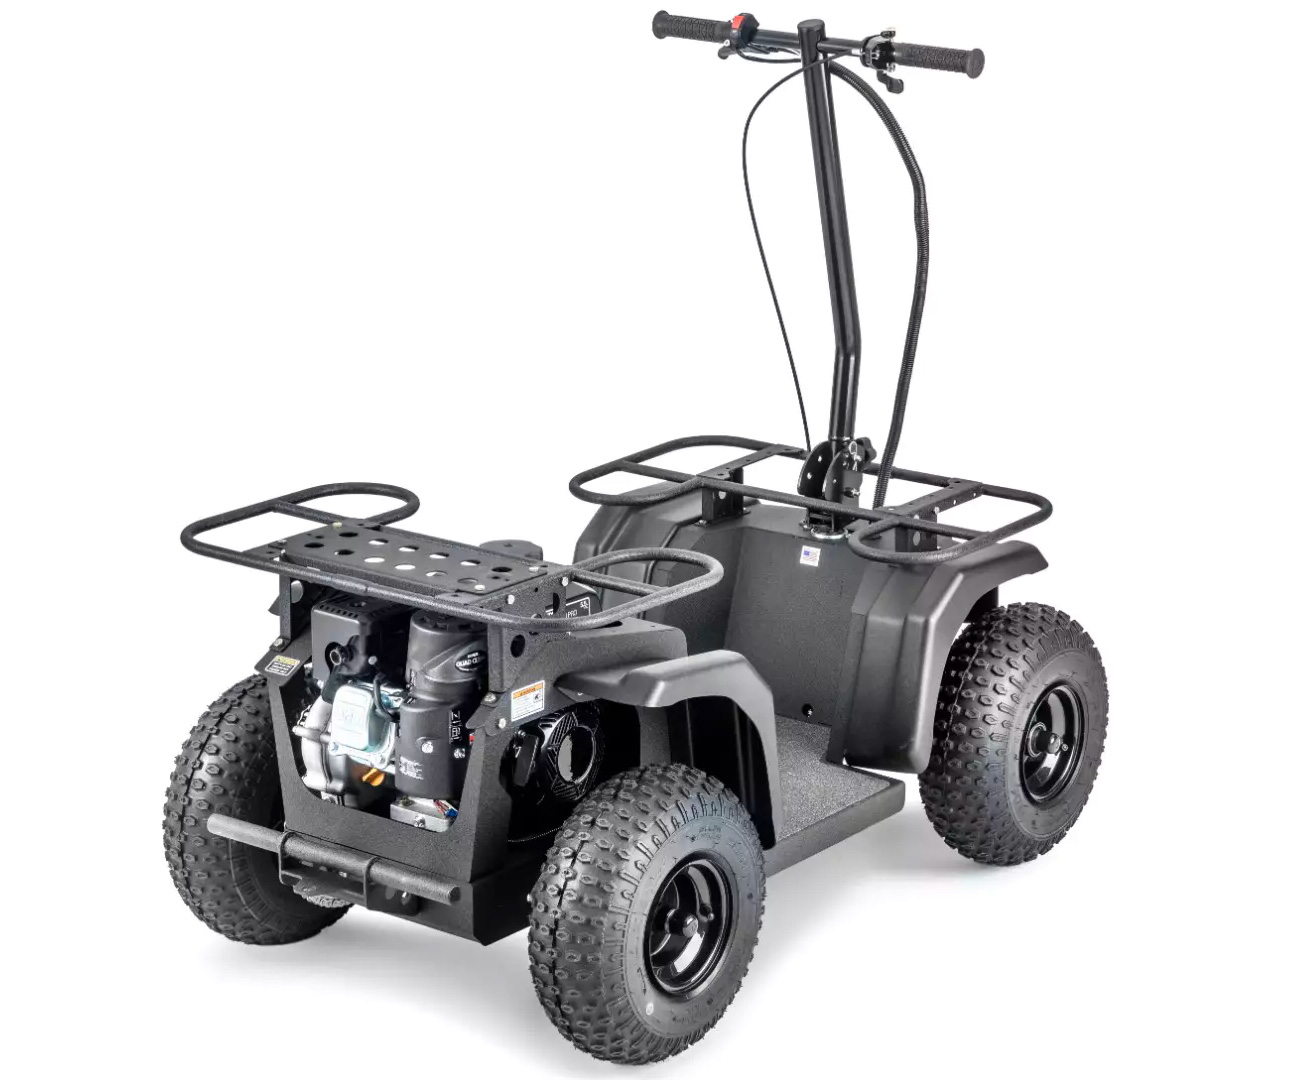 The Rogue Ripper is the Ultimate Mini ATV/Scooter at werd.com